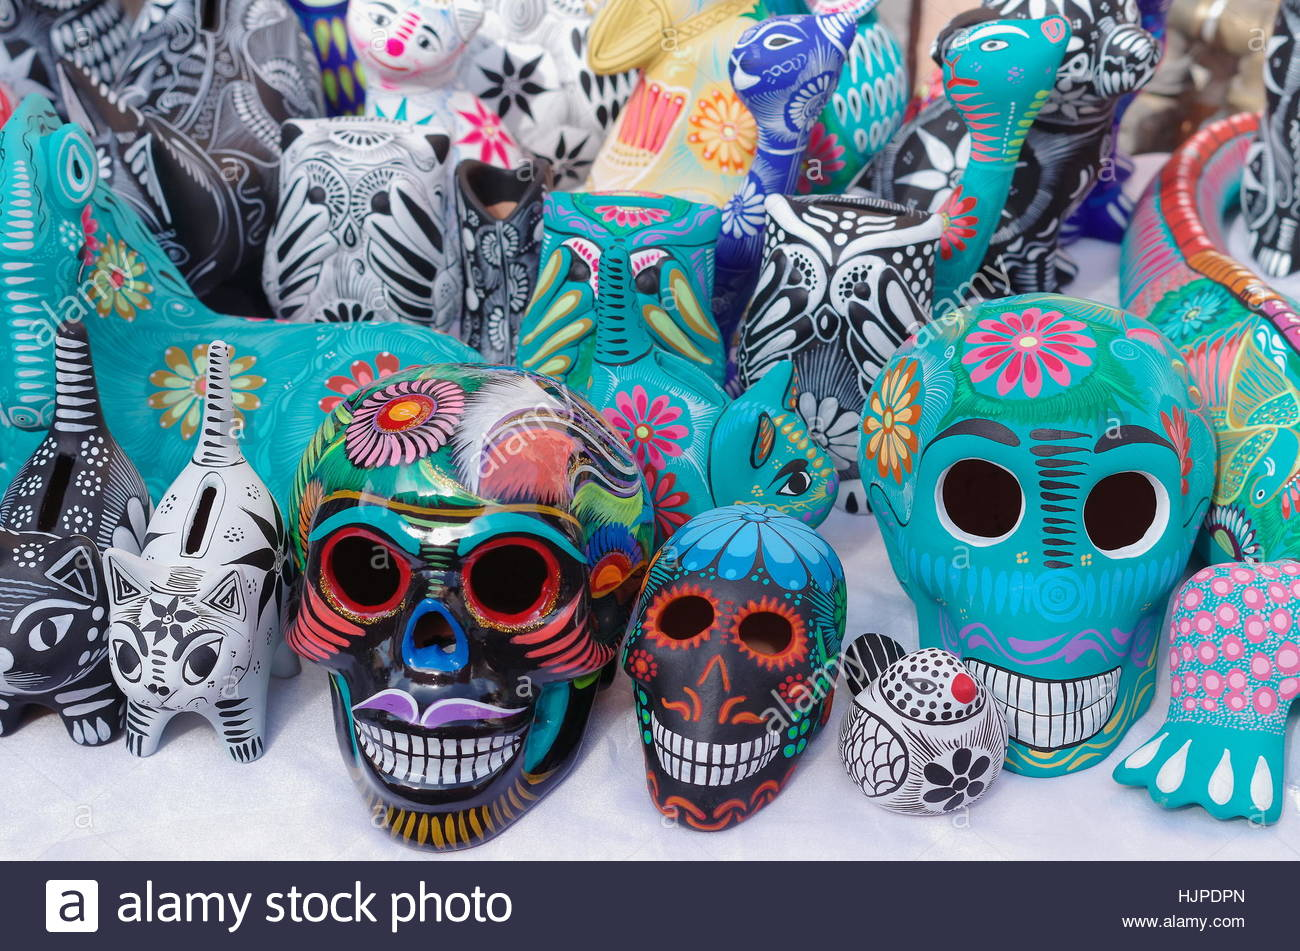 Day of the dead ceramic tiles image collections tile flooring day of the dead ceramic tiles image collections tile flooring mexican ceramic stock photos mexican ceramic dailygadgetfo Choice Image